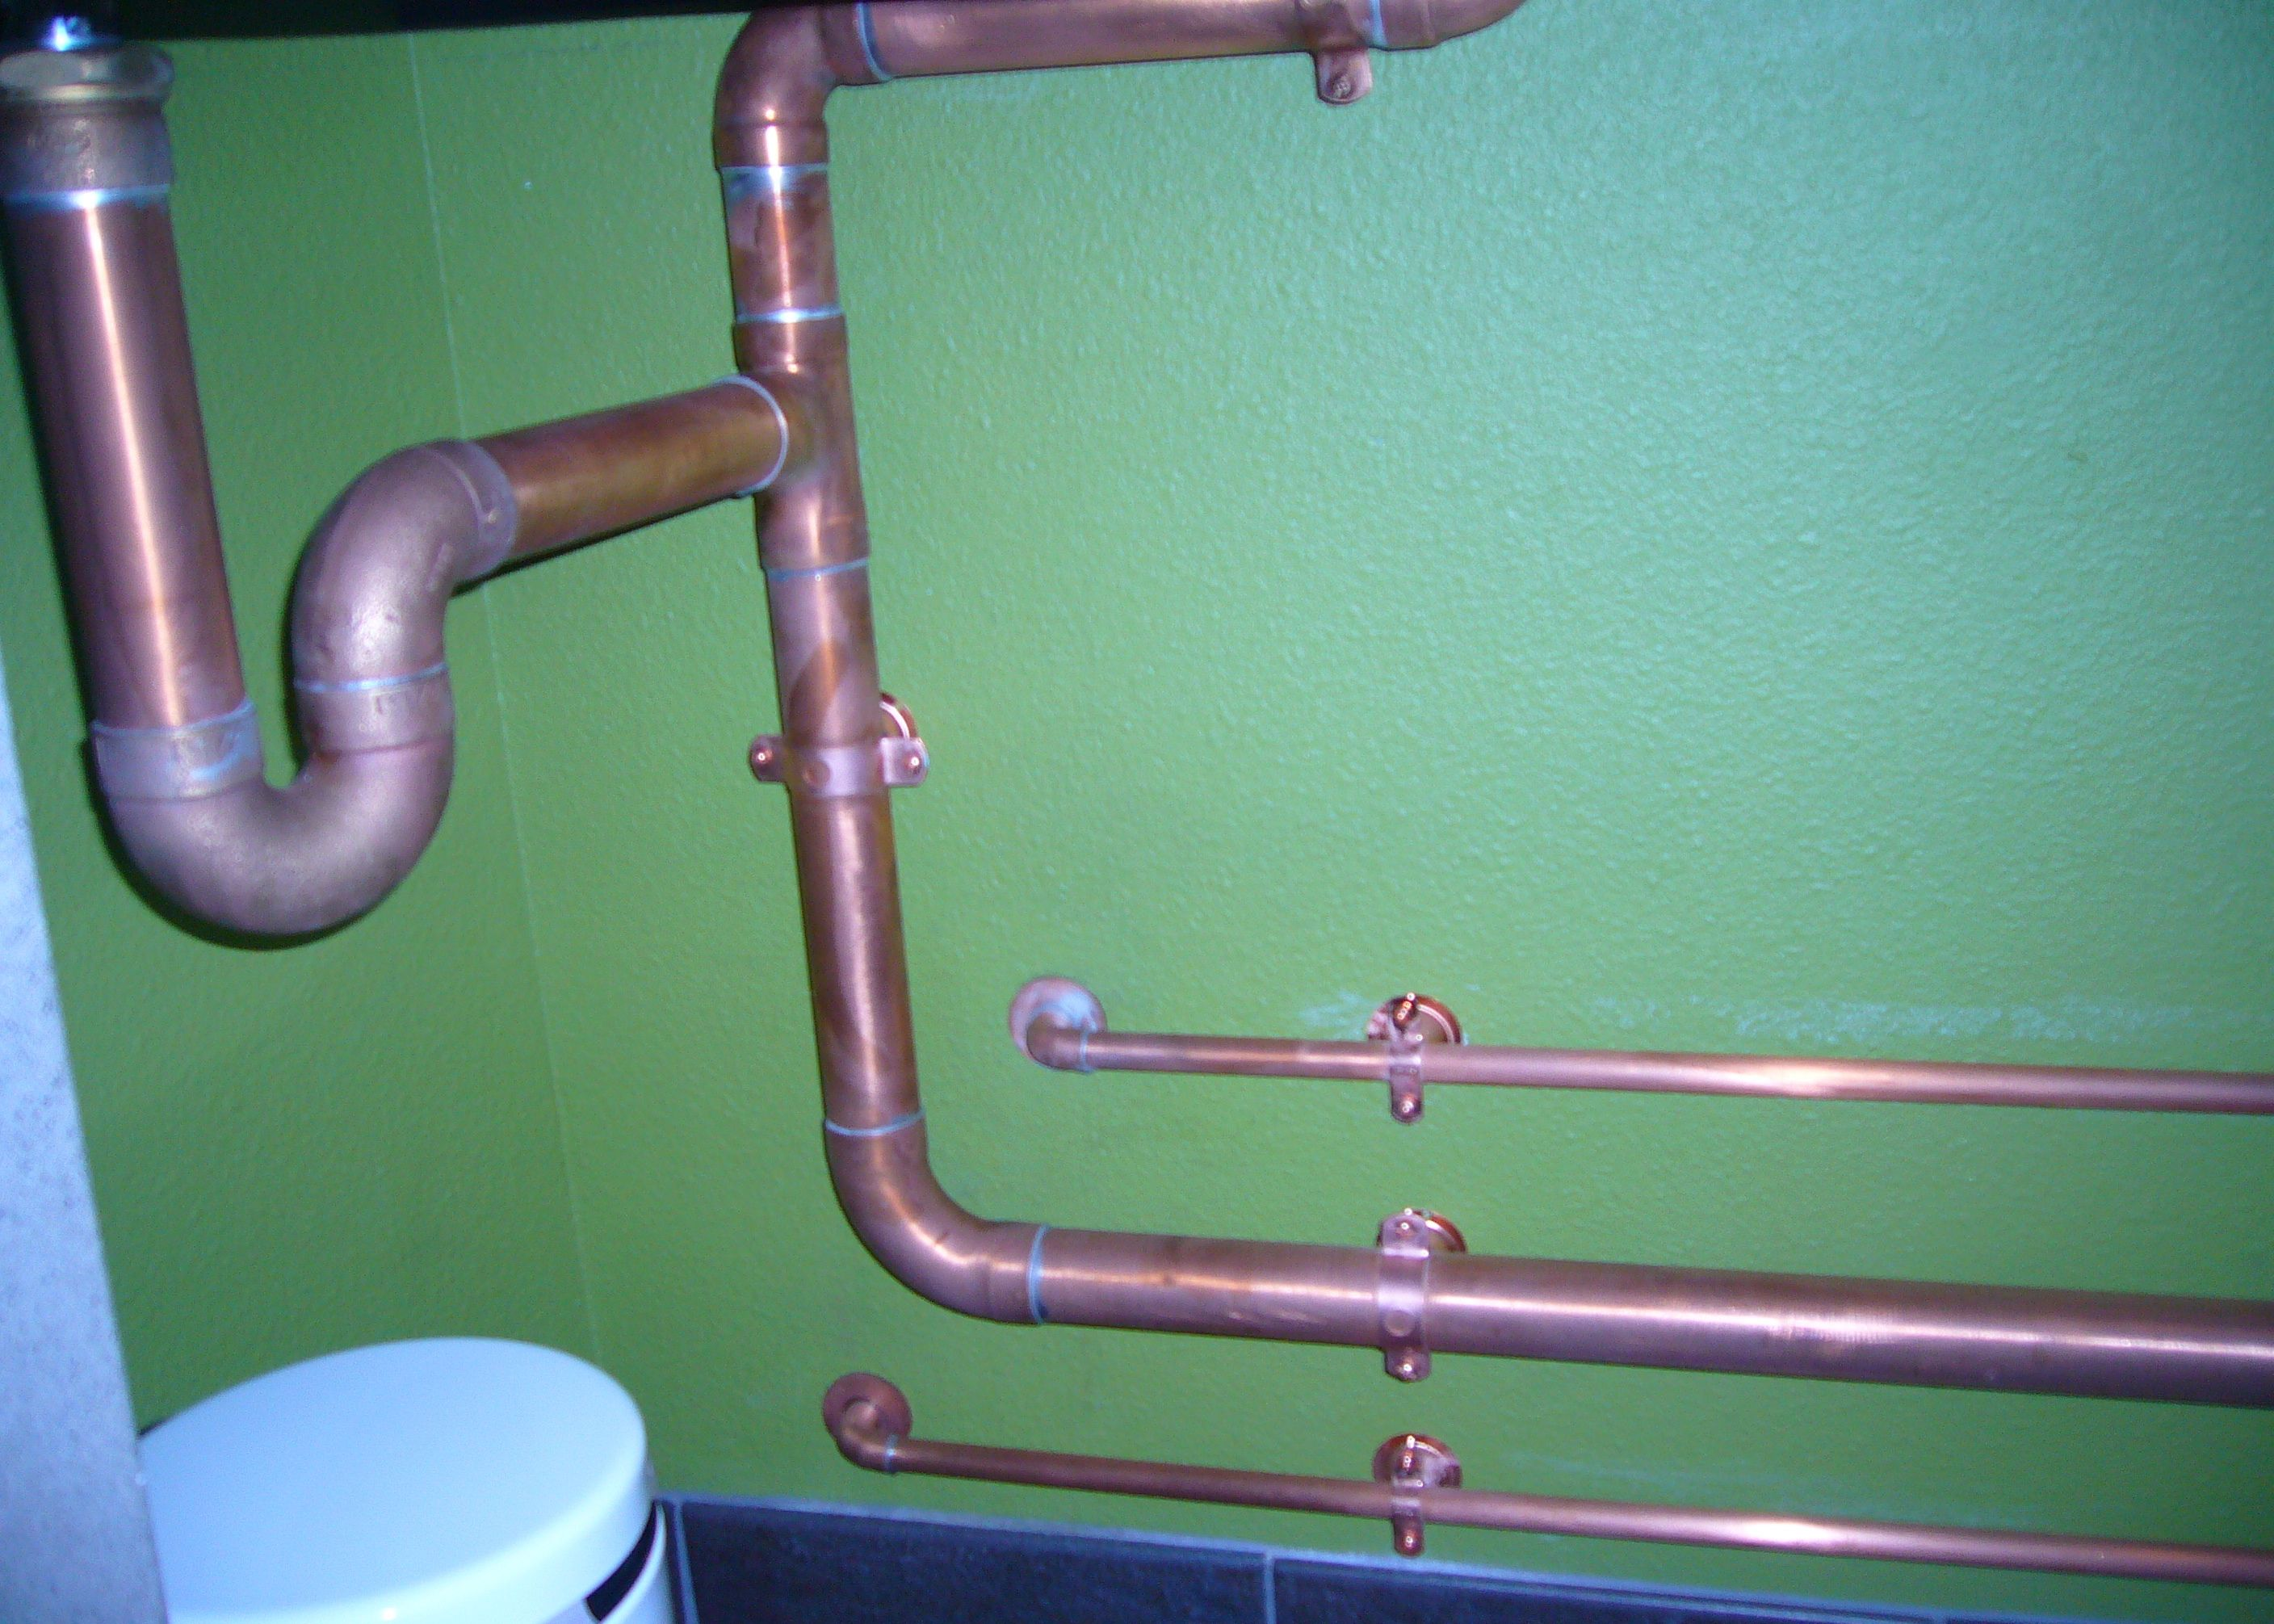 Kitchen plumbing repair, replacement & installation services in ...